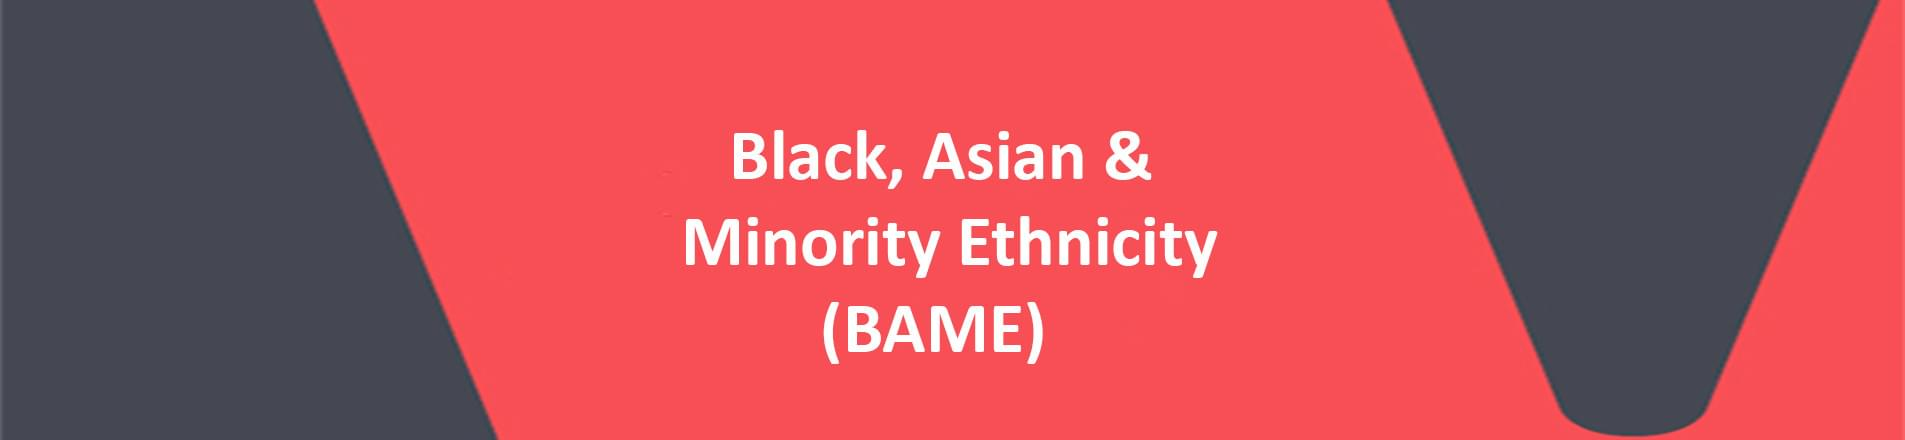 The words Black, Asian & Minority Ethnicity (BAME) in white on a red VERCIDA branded background